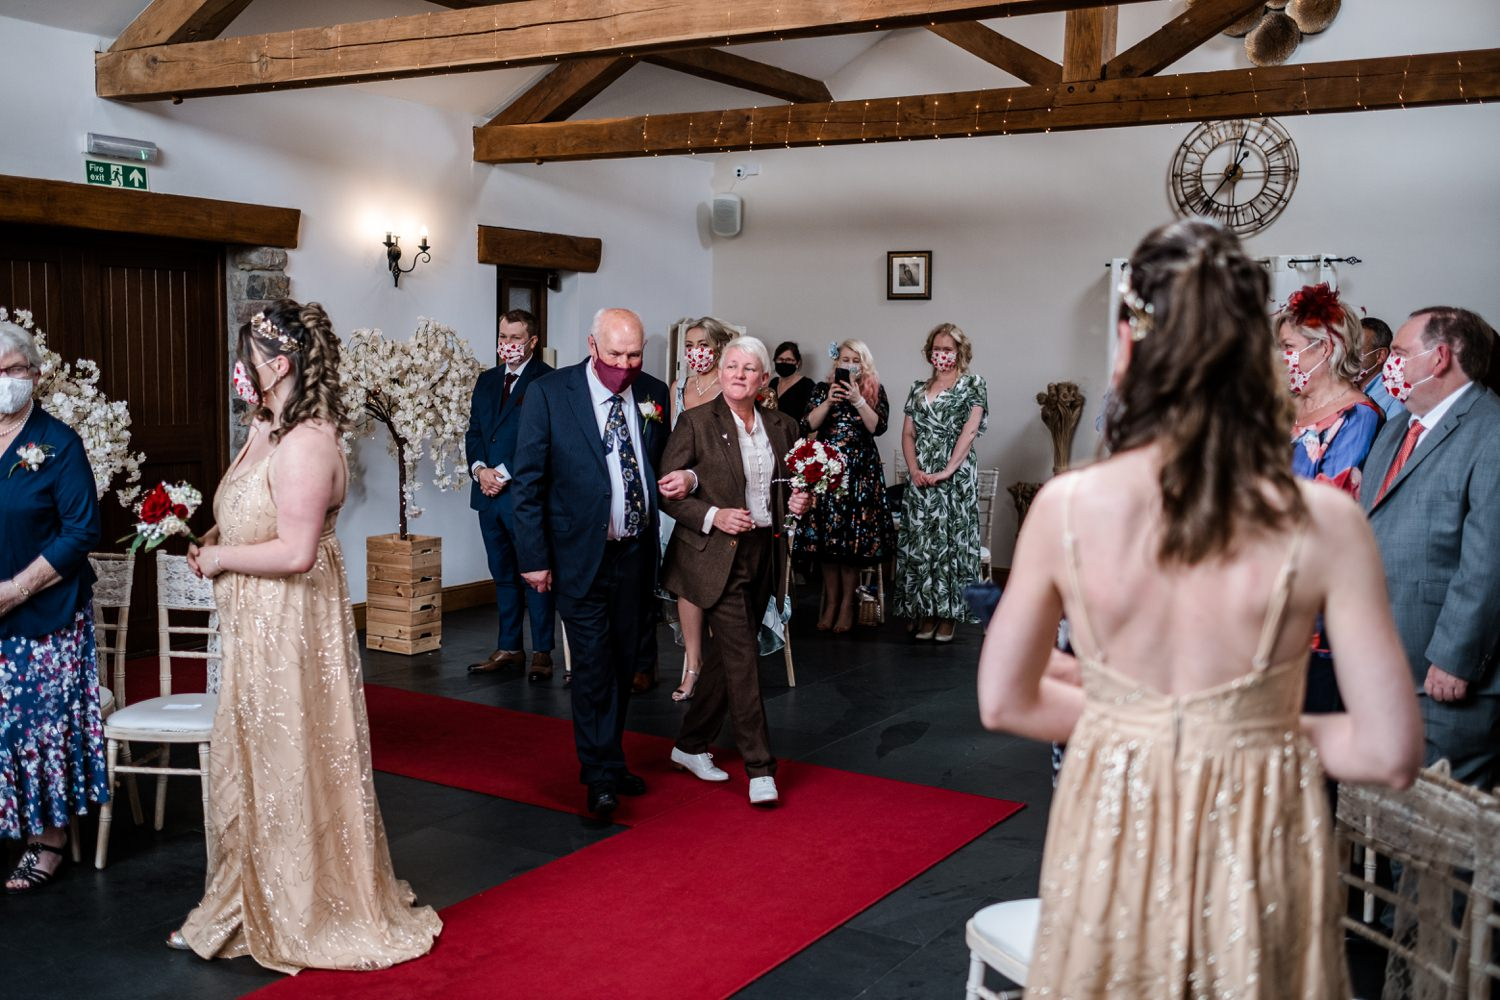 Lesbian bride arrives with father